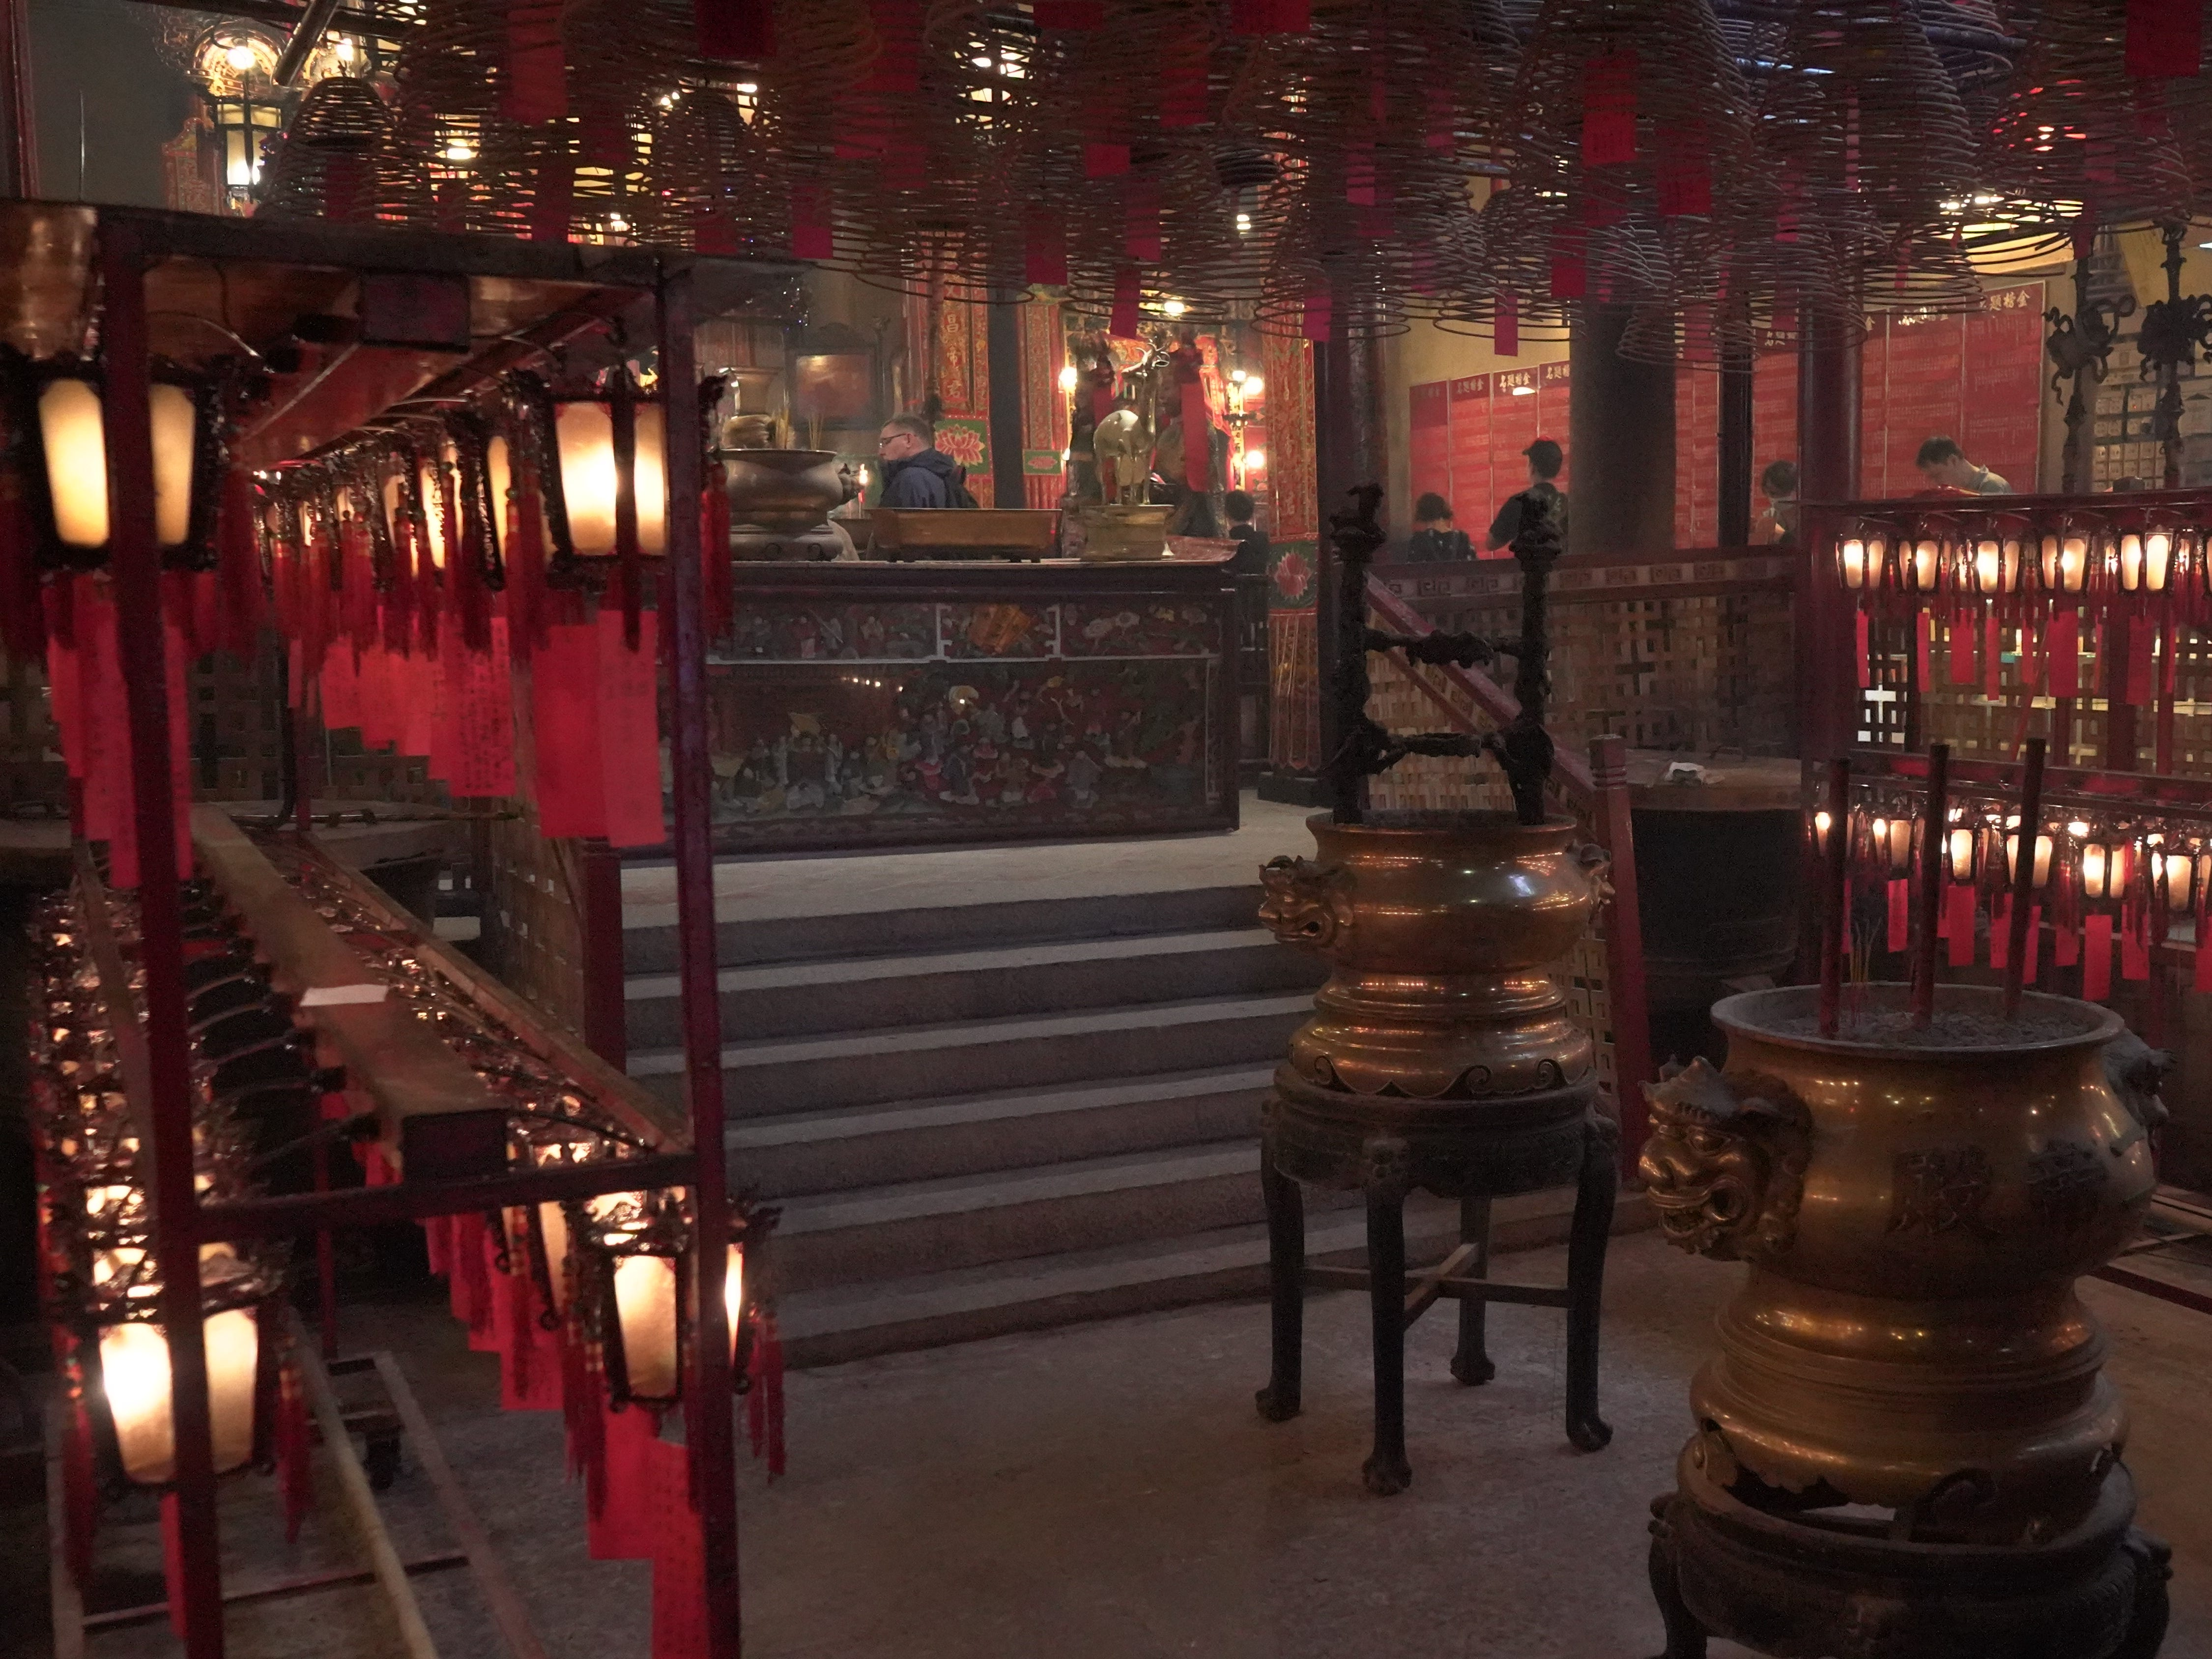 Inside one of Hong Kong's many temples.